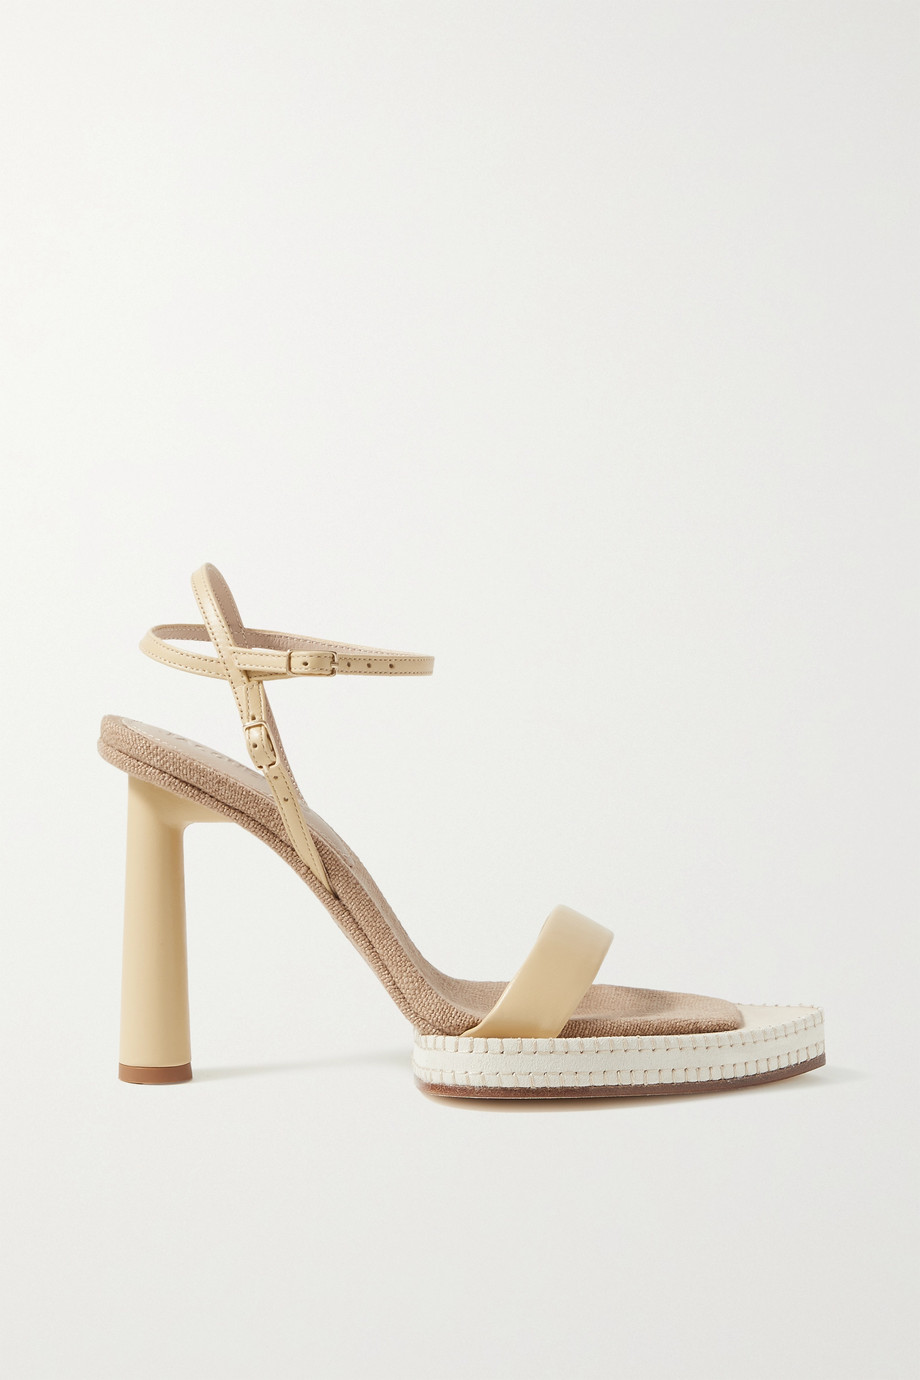 JACQUEMUS Novio leather sandals